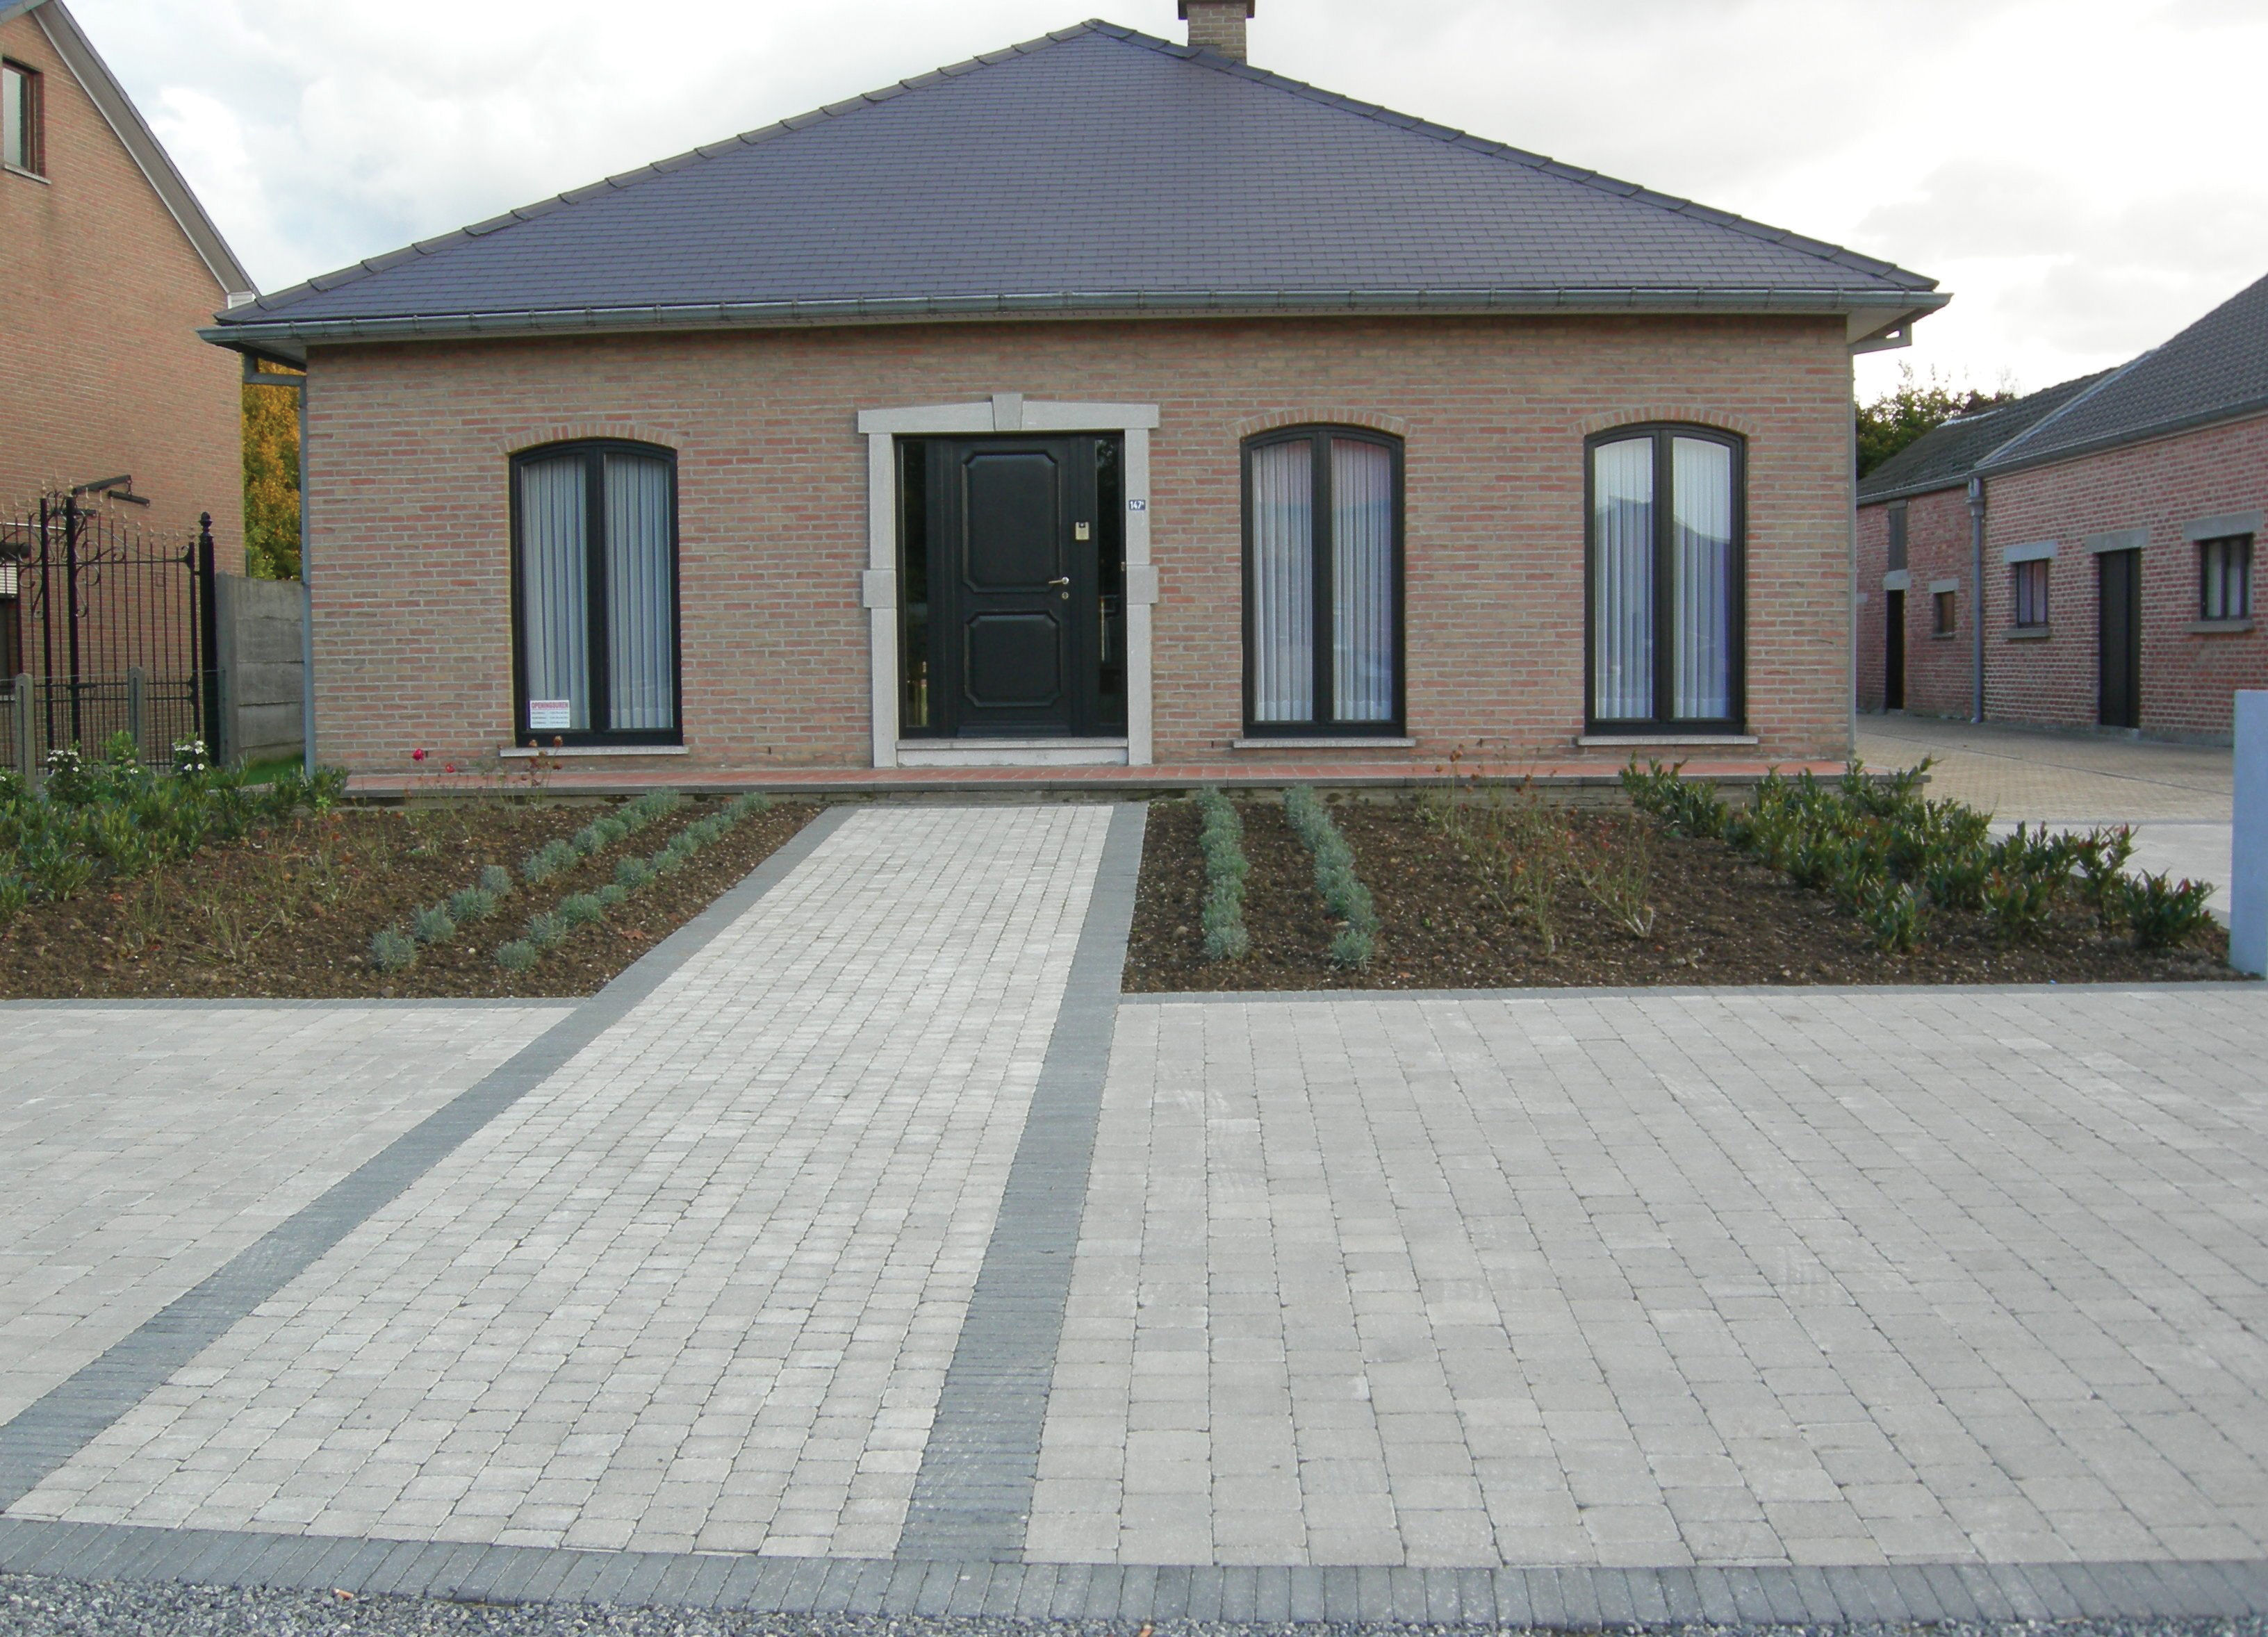 Pavage et dallage de votre terrasse mv carrelage gembloux for Entree maison exterieur originale